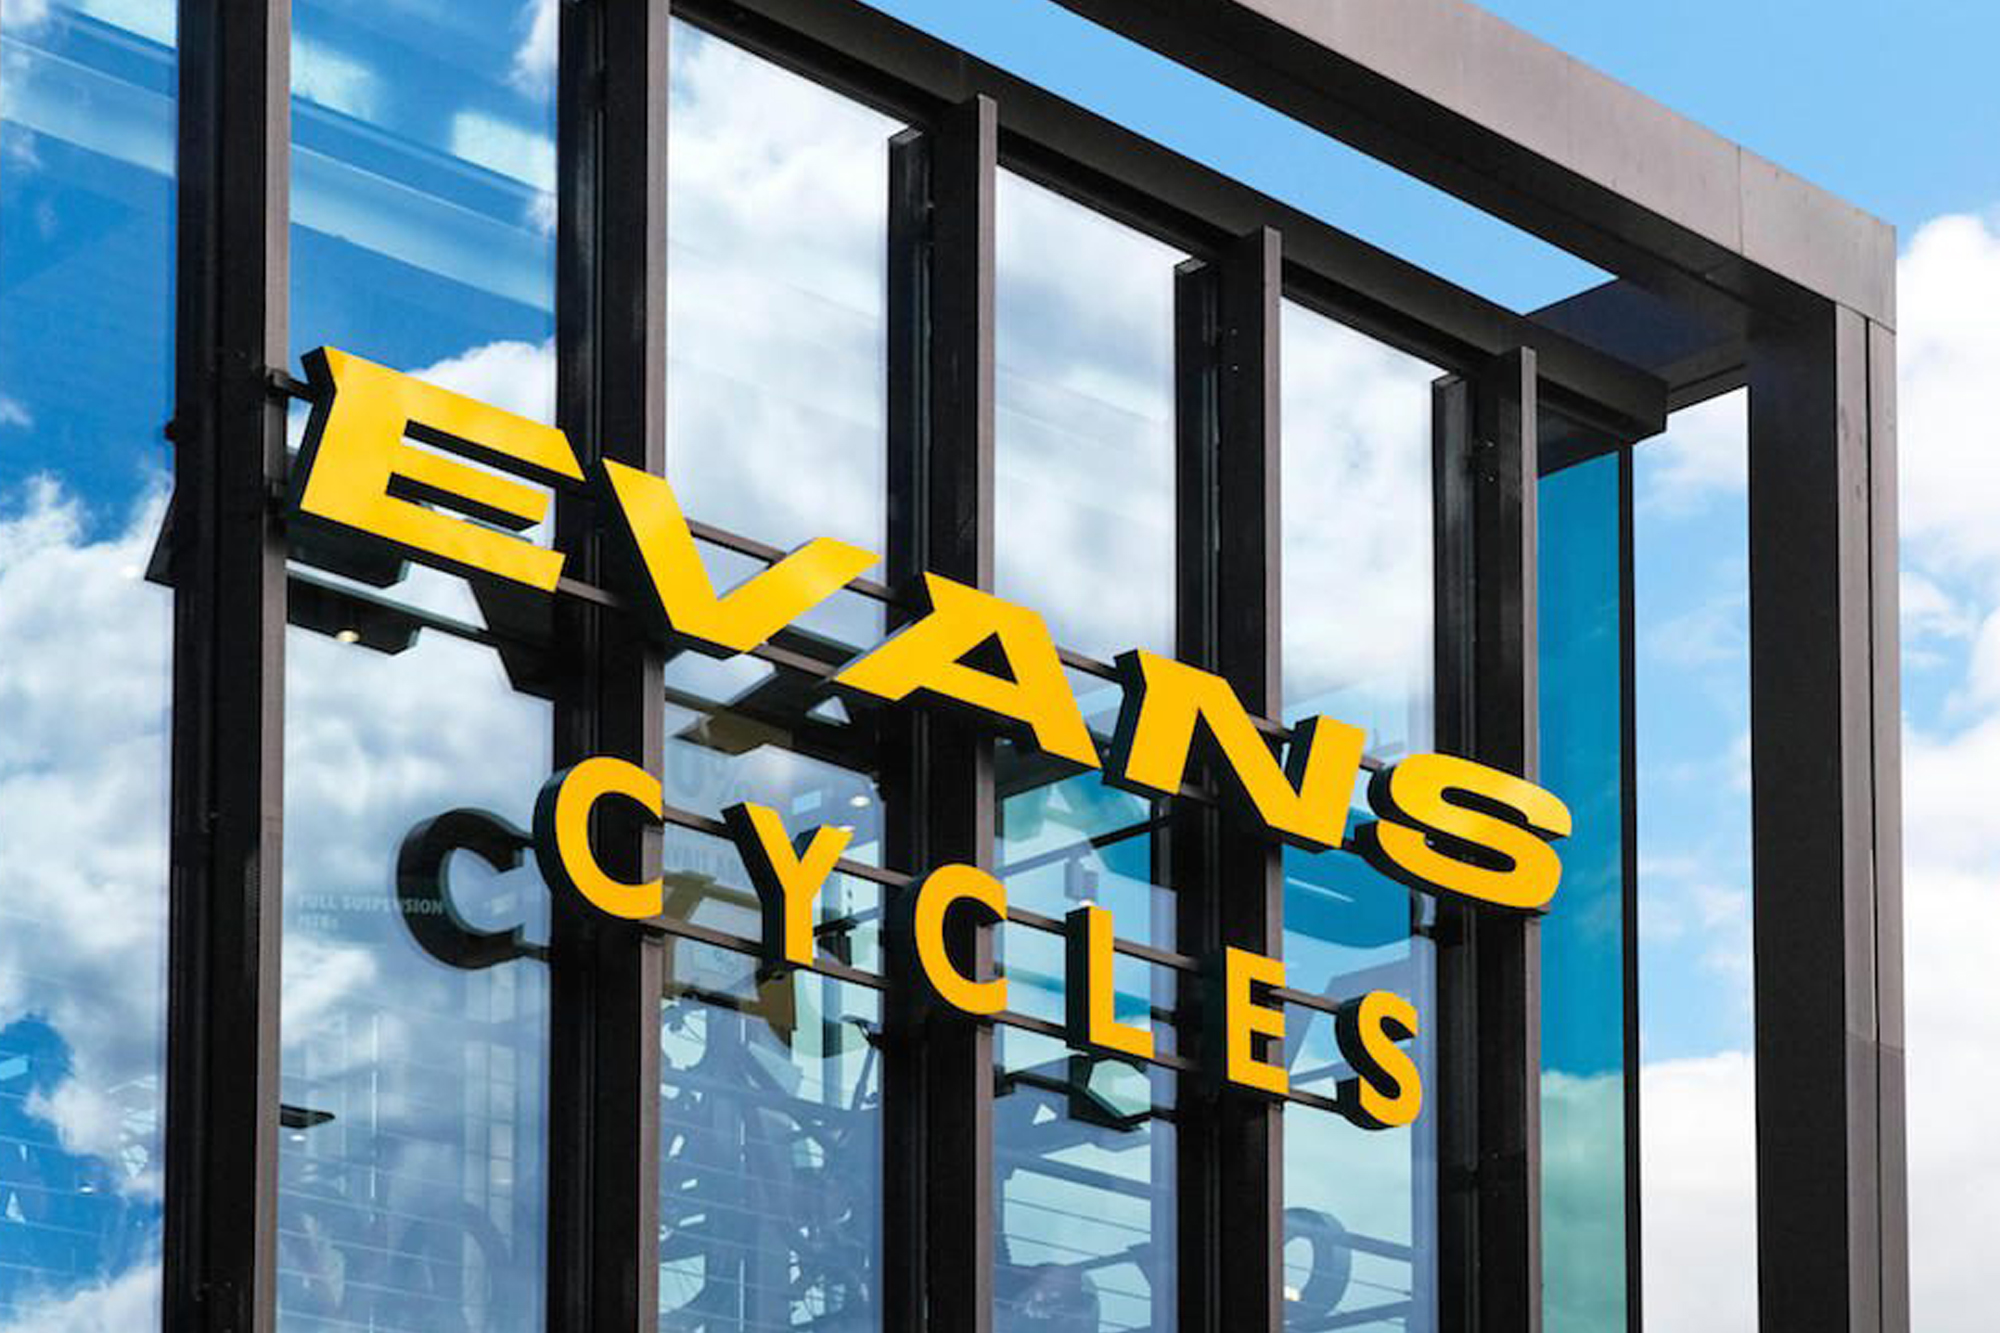 Evans Cycles launches Black Friday deals: Save £140 on a Garmin Edge 530 plus much more